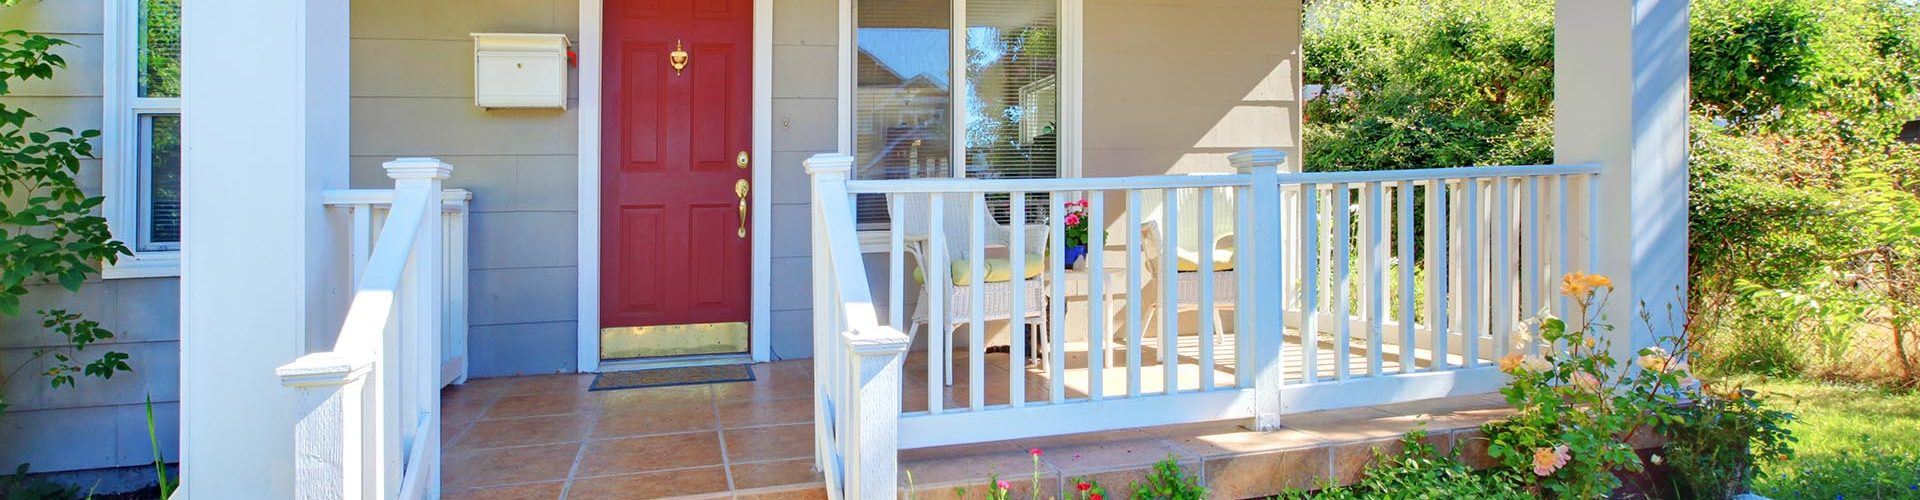 Add Curb Appeal to Your Home for Less Than $75